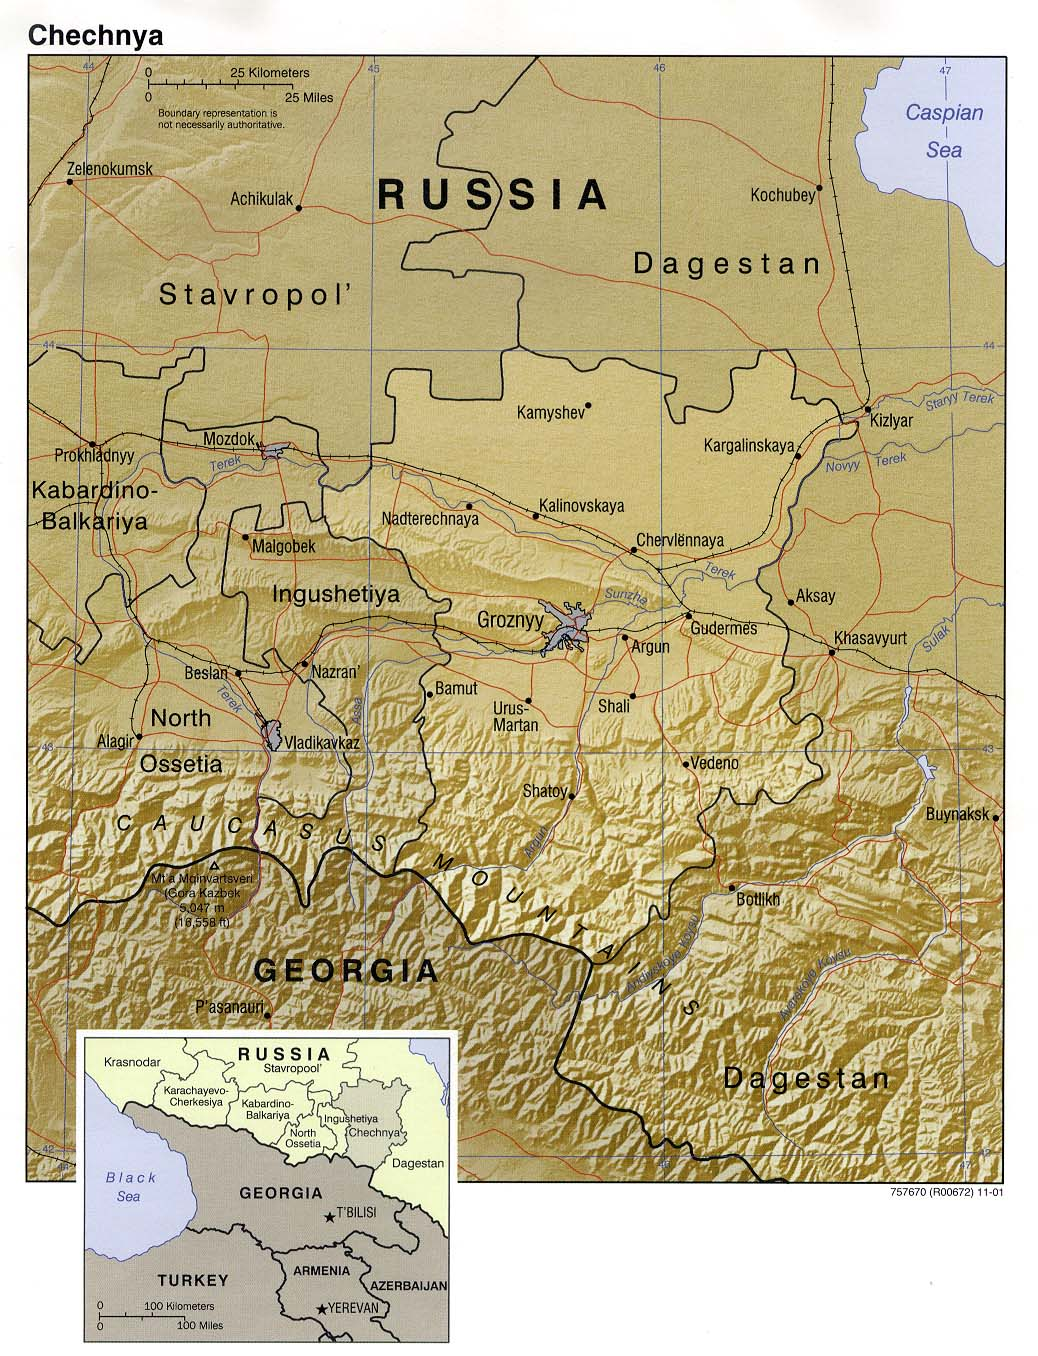 Chechnya (Chechen Republic) Maps - Perry-Castañeda Map ... on turkistan on world map, altai on world map, sinkiang on world map, sovetsk on world map, yugoslavia on world map, chernobyl on world map, corsica on world map, kosovo on world map, iran on world map, namibia on world map, thailand on world map, the persian gulf on world map, dome of the rock on world map, abkhazia on world map, yemen on world map, south korea on world map, myanmar burma on world map, map of middle east on world map, finland on world map, bosnia-herzegovina on world map,